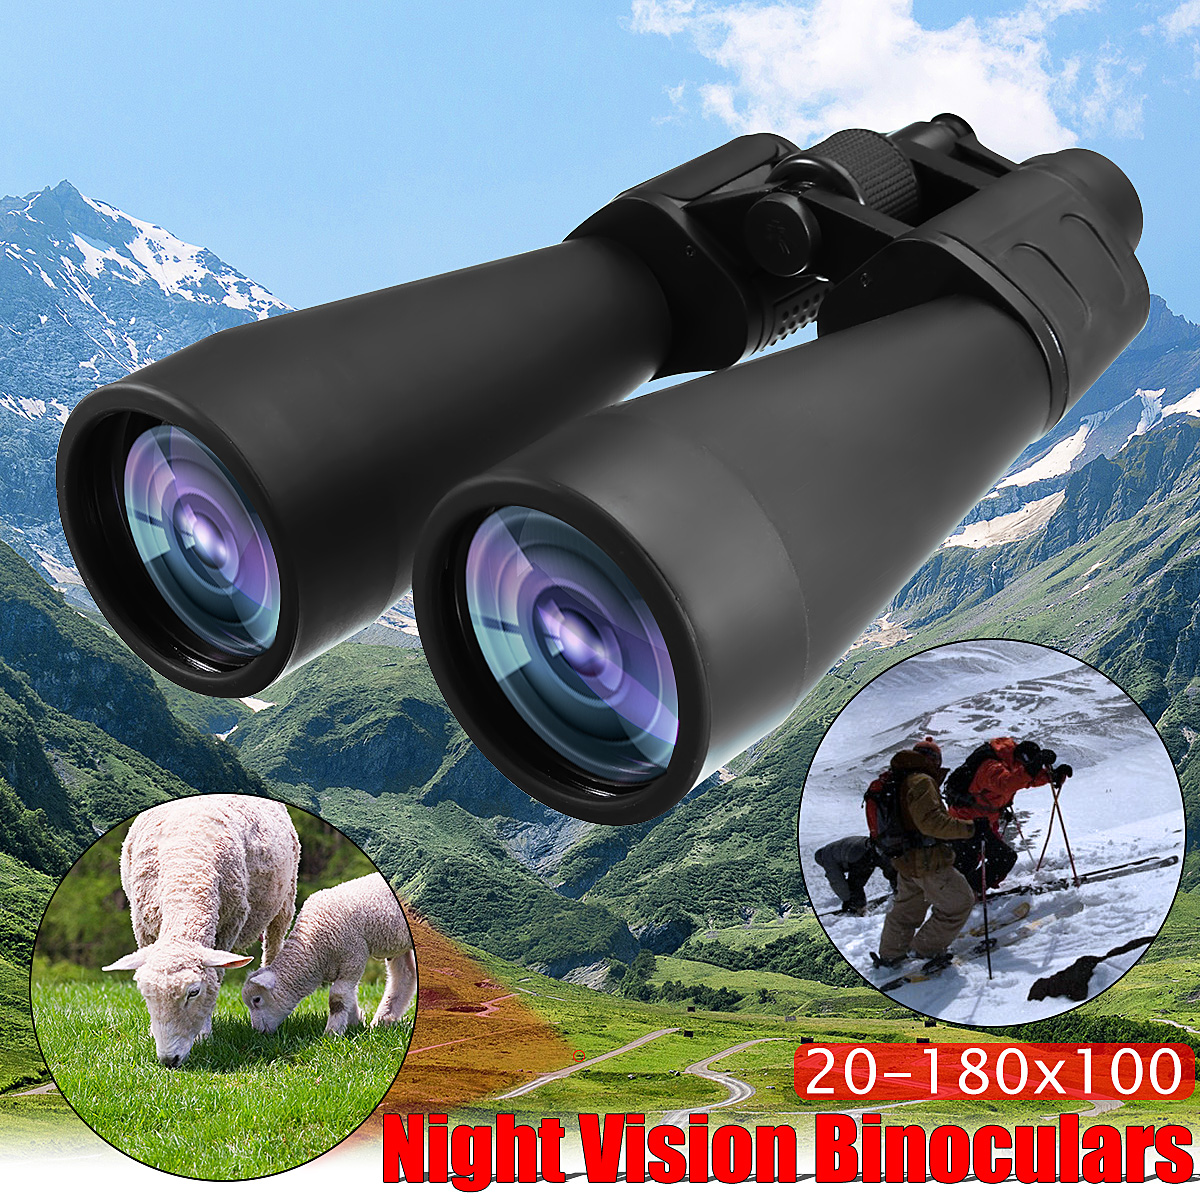 20-180x100 HD Zoom Binoculars Optic Low Light Level Night Vision Telescope Camping Travel